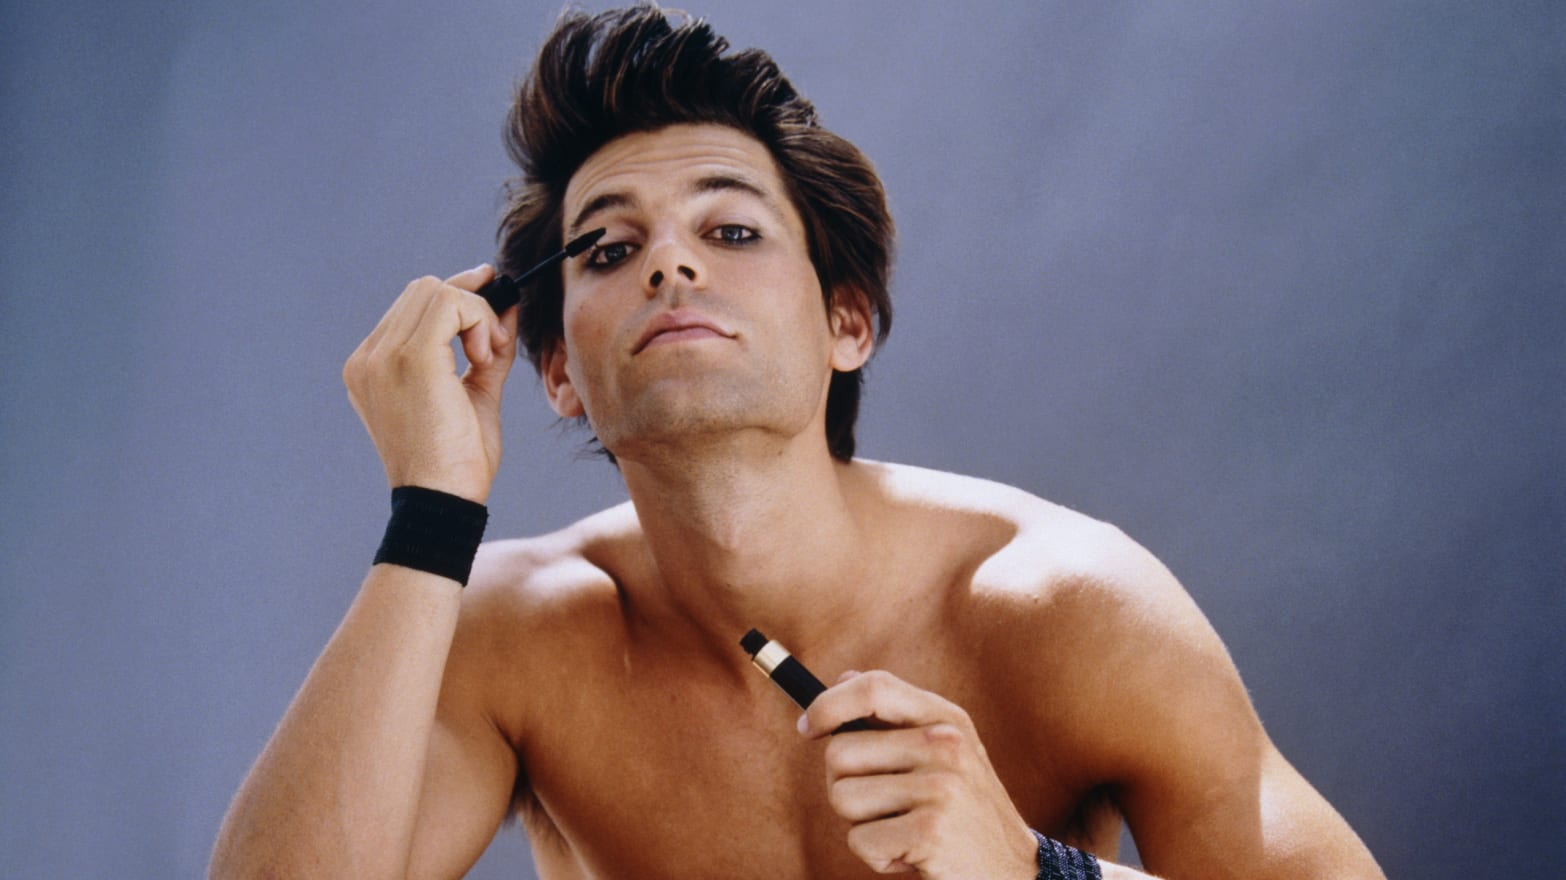 Makeup for Men is On The Rise—And No Longer A Taboo